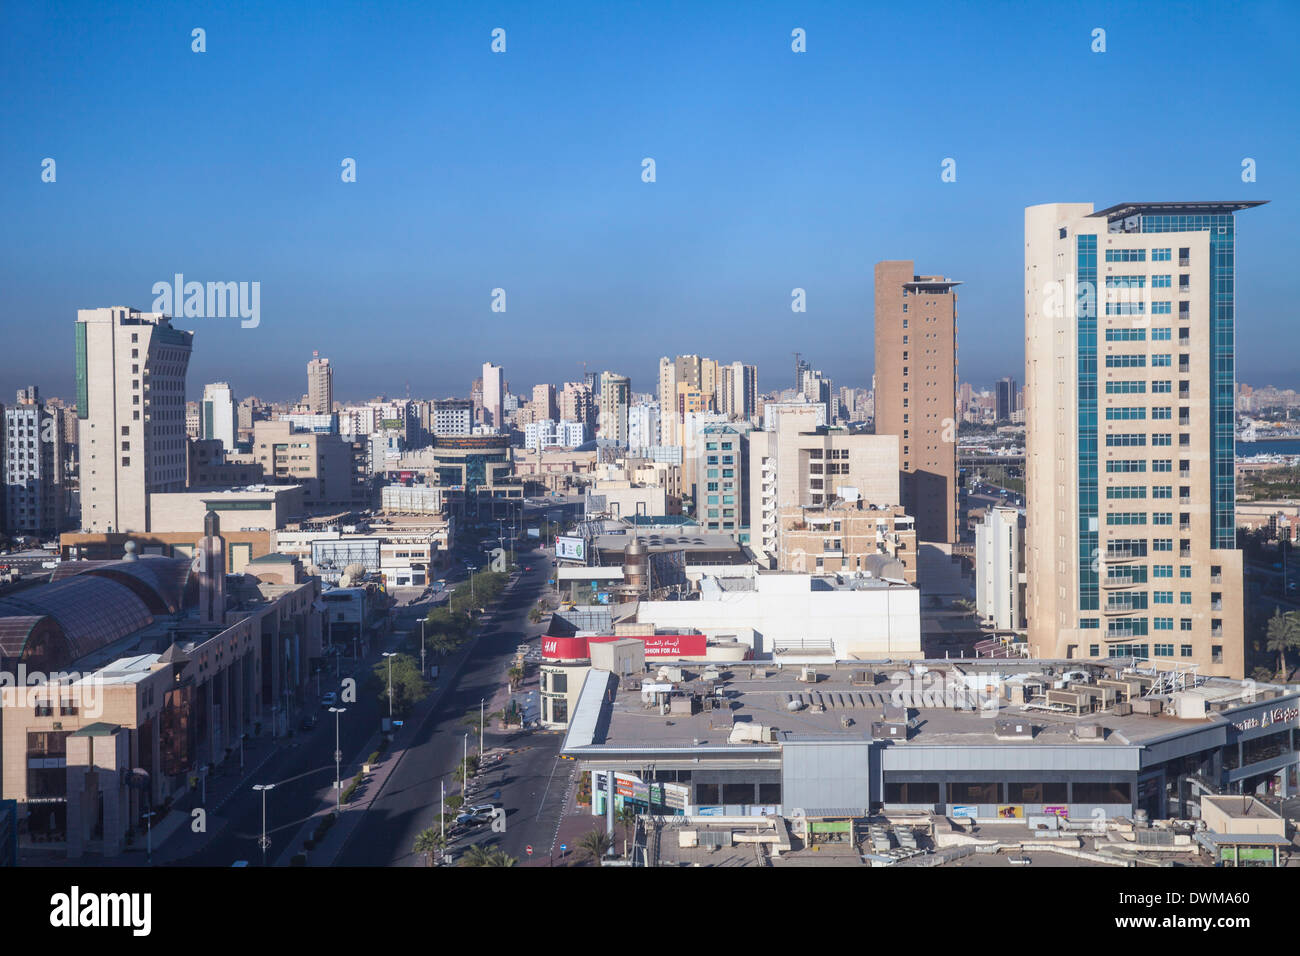 Salmiya, Kuwait City, Kuwait, Middle East - Stock Image